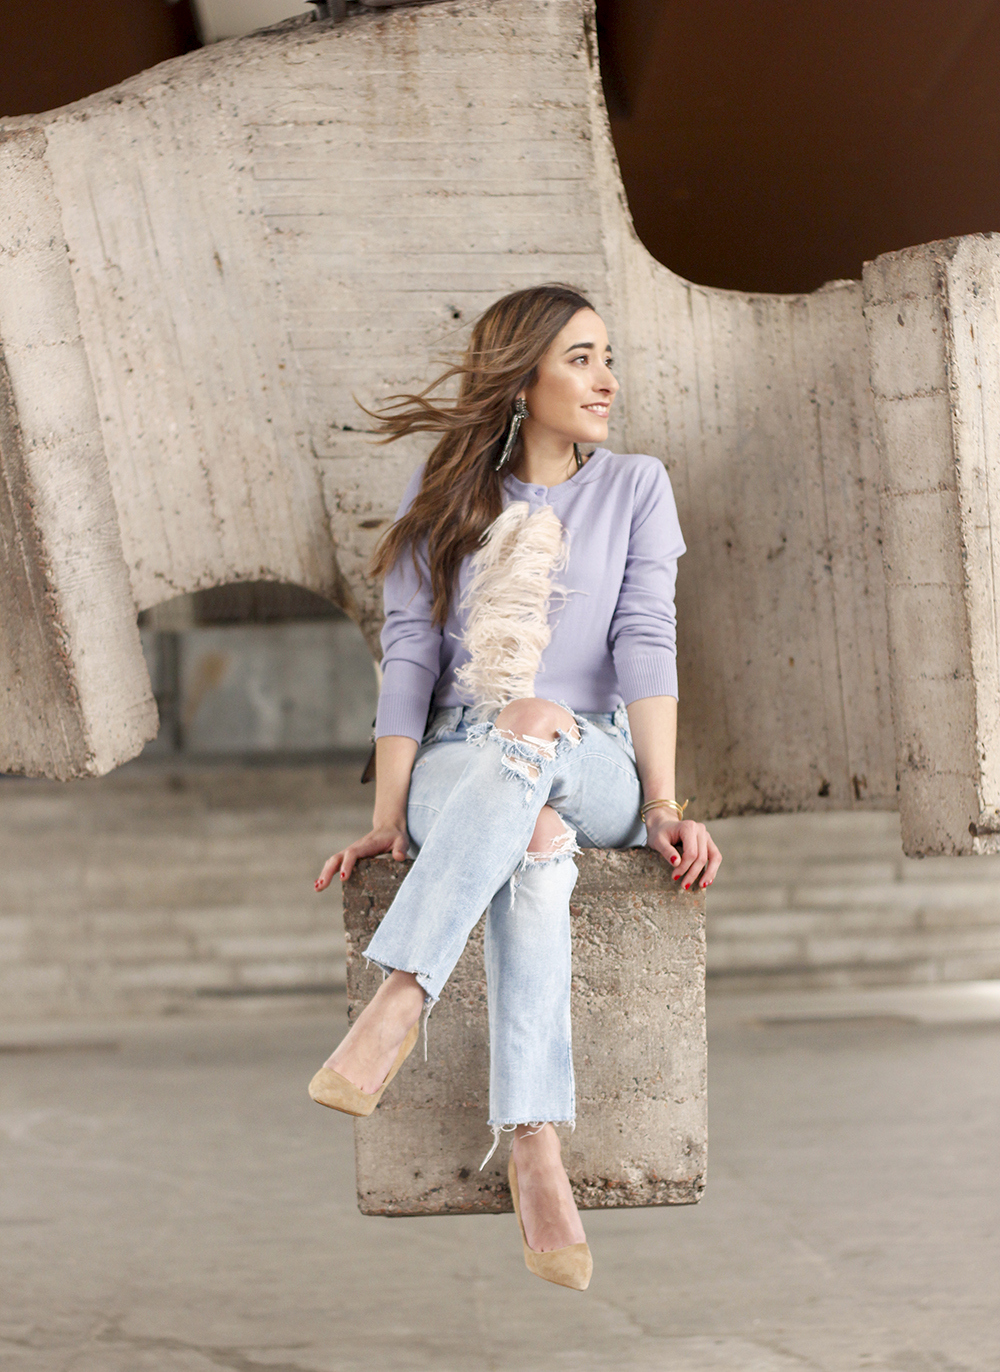 lavender sweater ripped jeans gucci bag nude heels casual street style casual outfit 201912